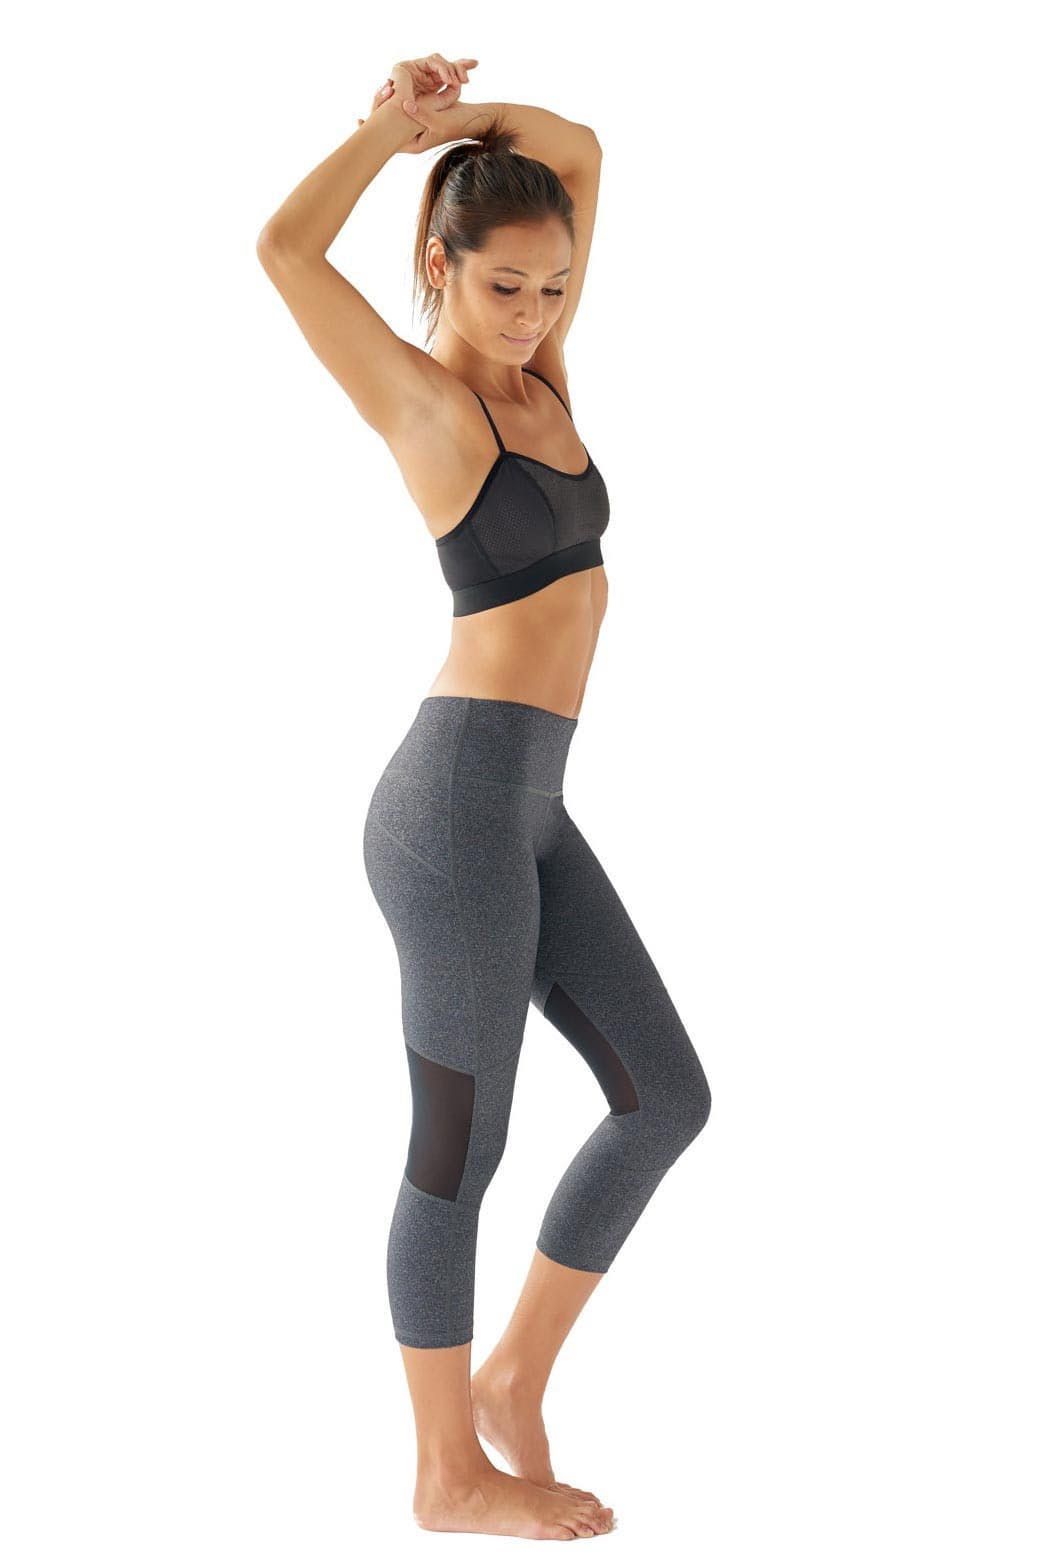 403a49d42e The Best Workout Leggings for Going Commando - Racked